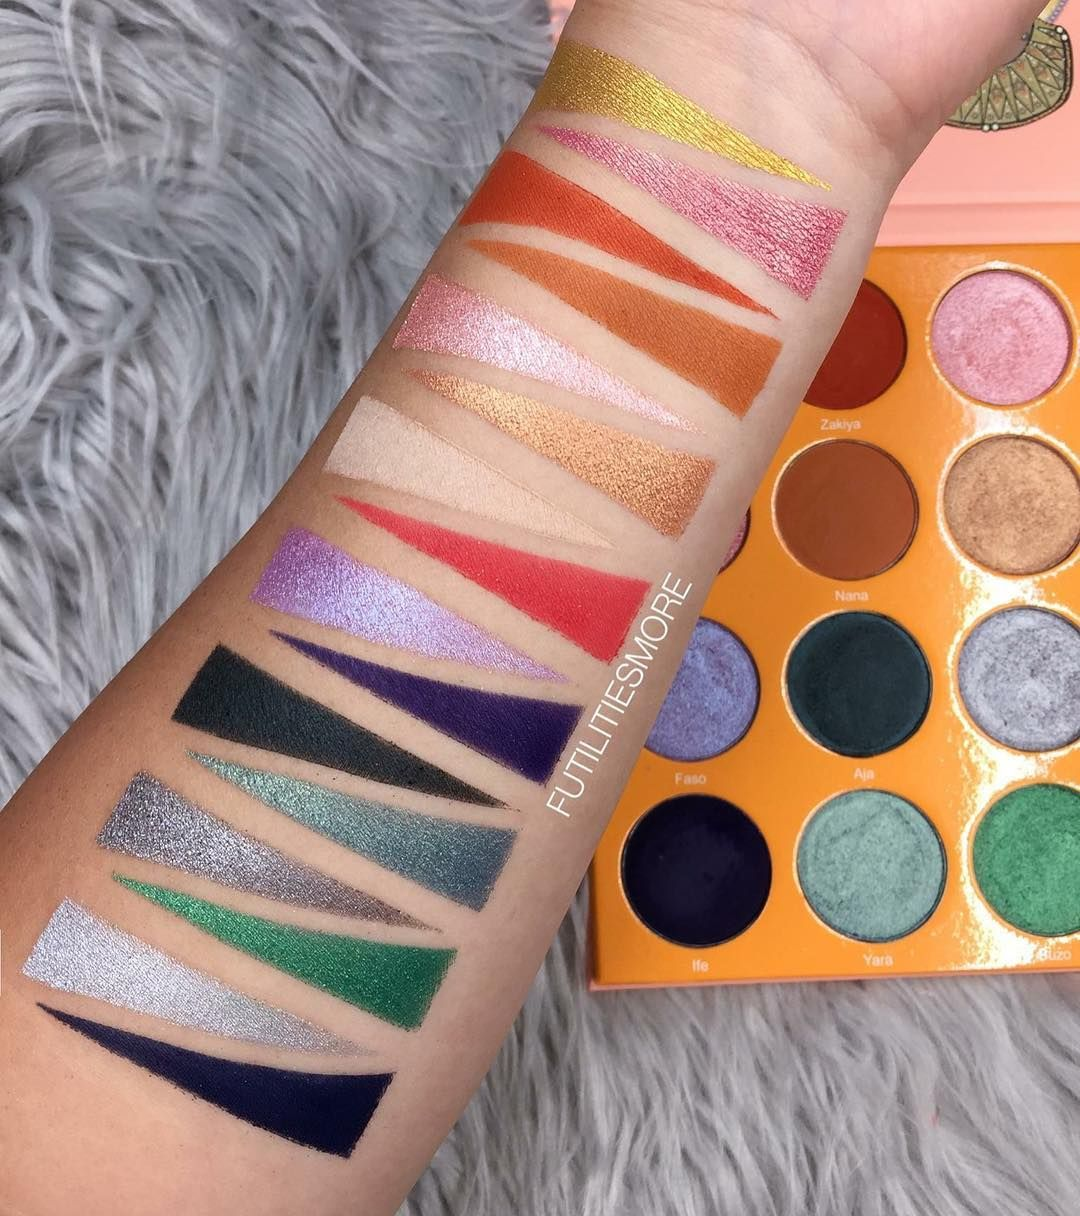 Juvia's place magic palette swatches Makeup swatches